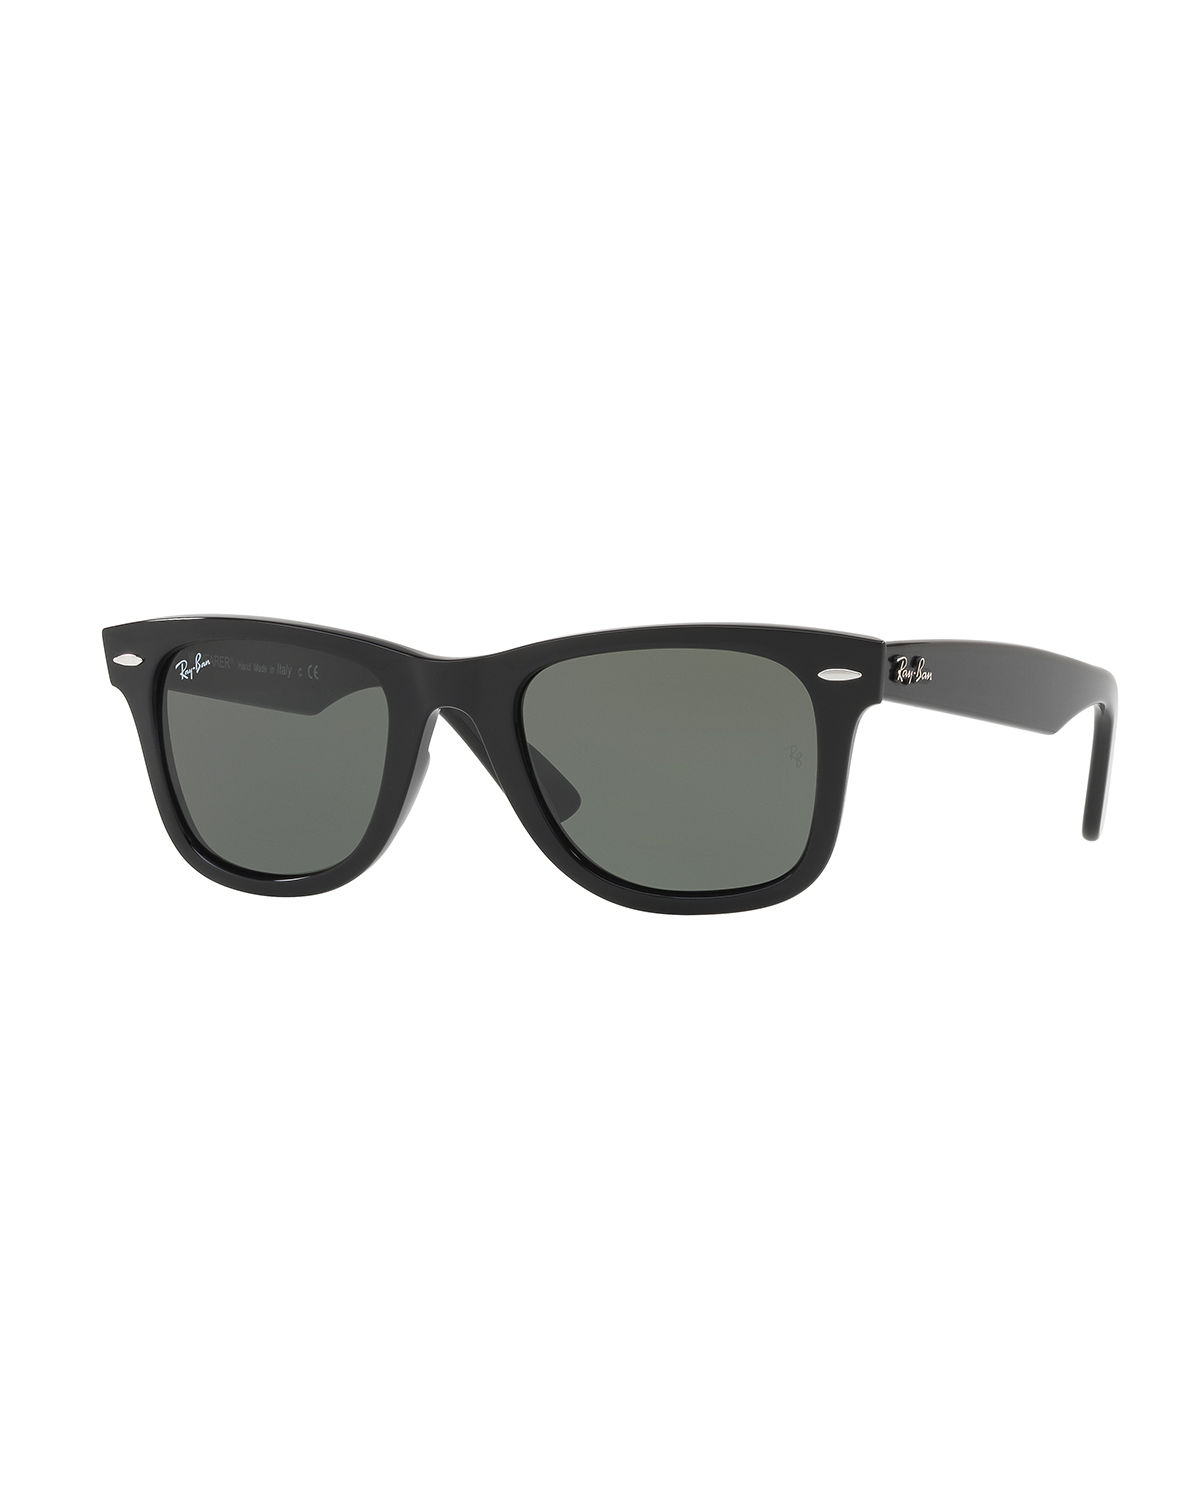 e8208f26d8d71 Ray-Ban Wayfarer Ease Sunglasses